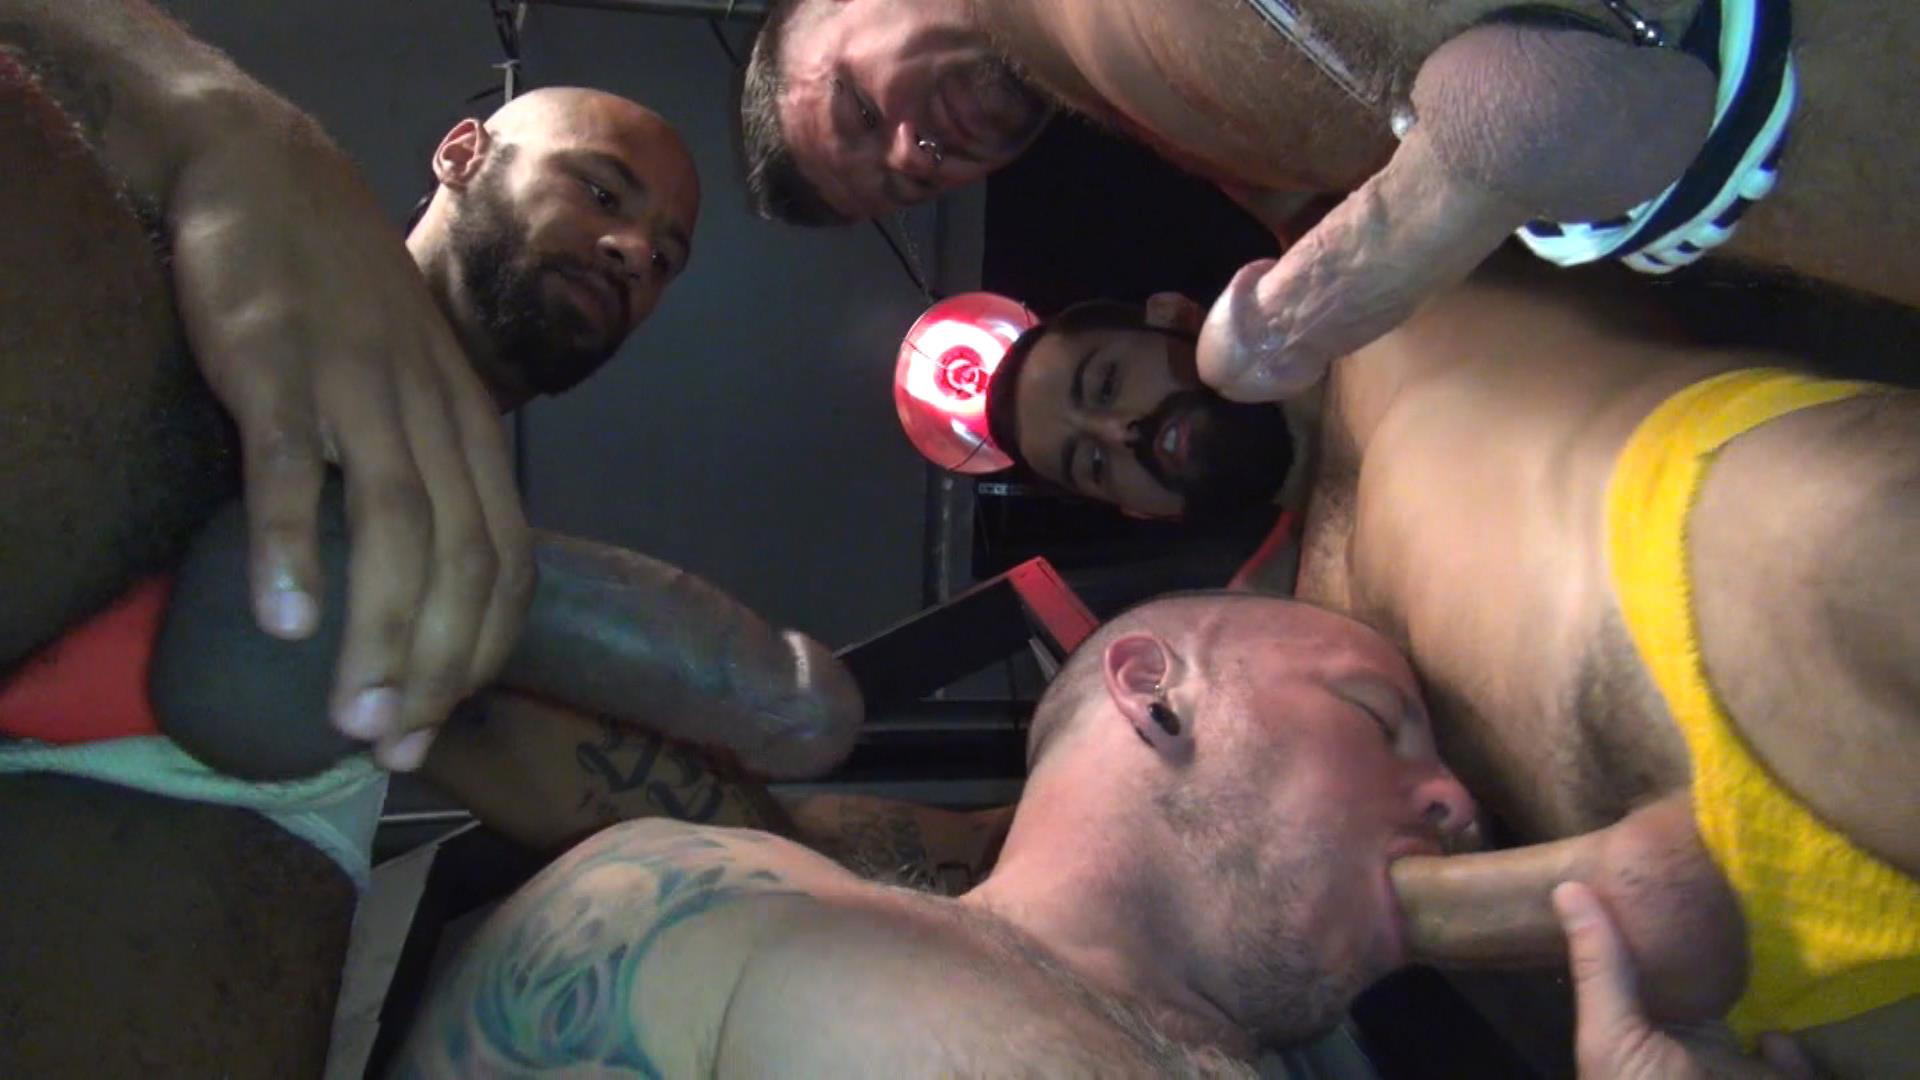 Raw-Fuck-Club-Raw-Fuck-Club-Max-Cameron-and-Christian-Matthews-and-Kory-Mitchel-and-Dean-Brody-Bareback-Bathhouse-Amateur-Gay-Porn-5 Four Way Bareback Fucking And Cum Fest At The Bathhouse